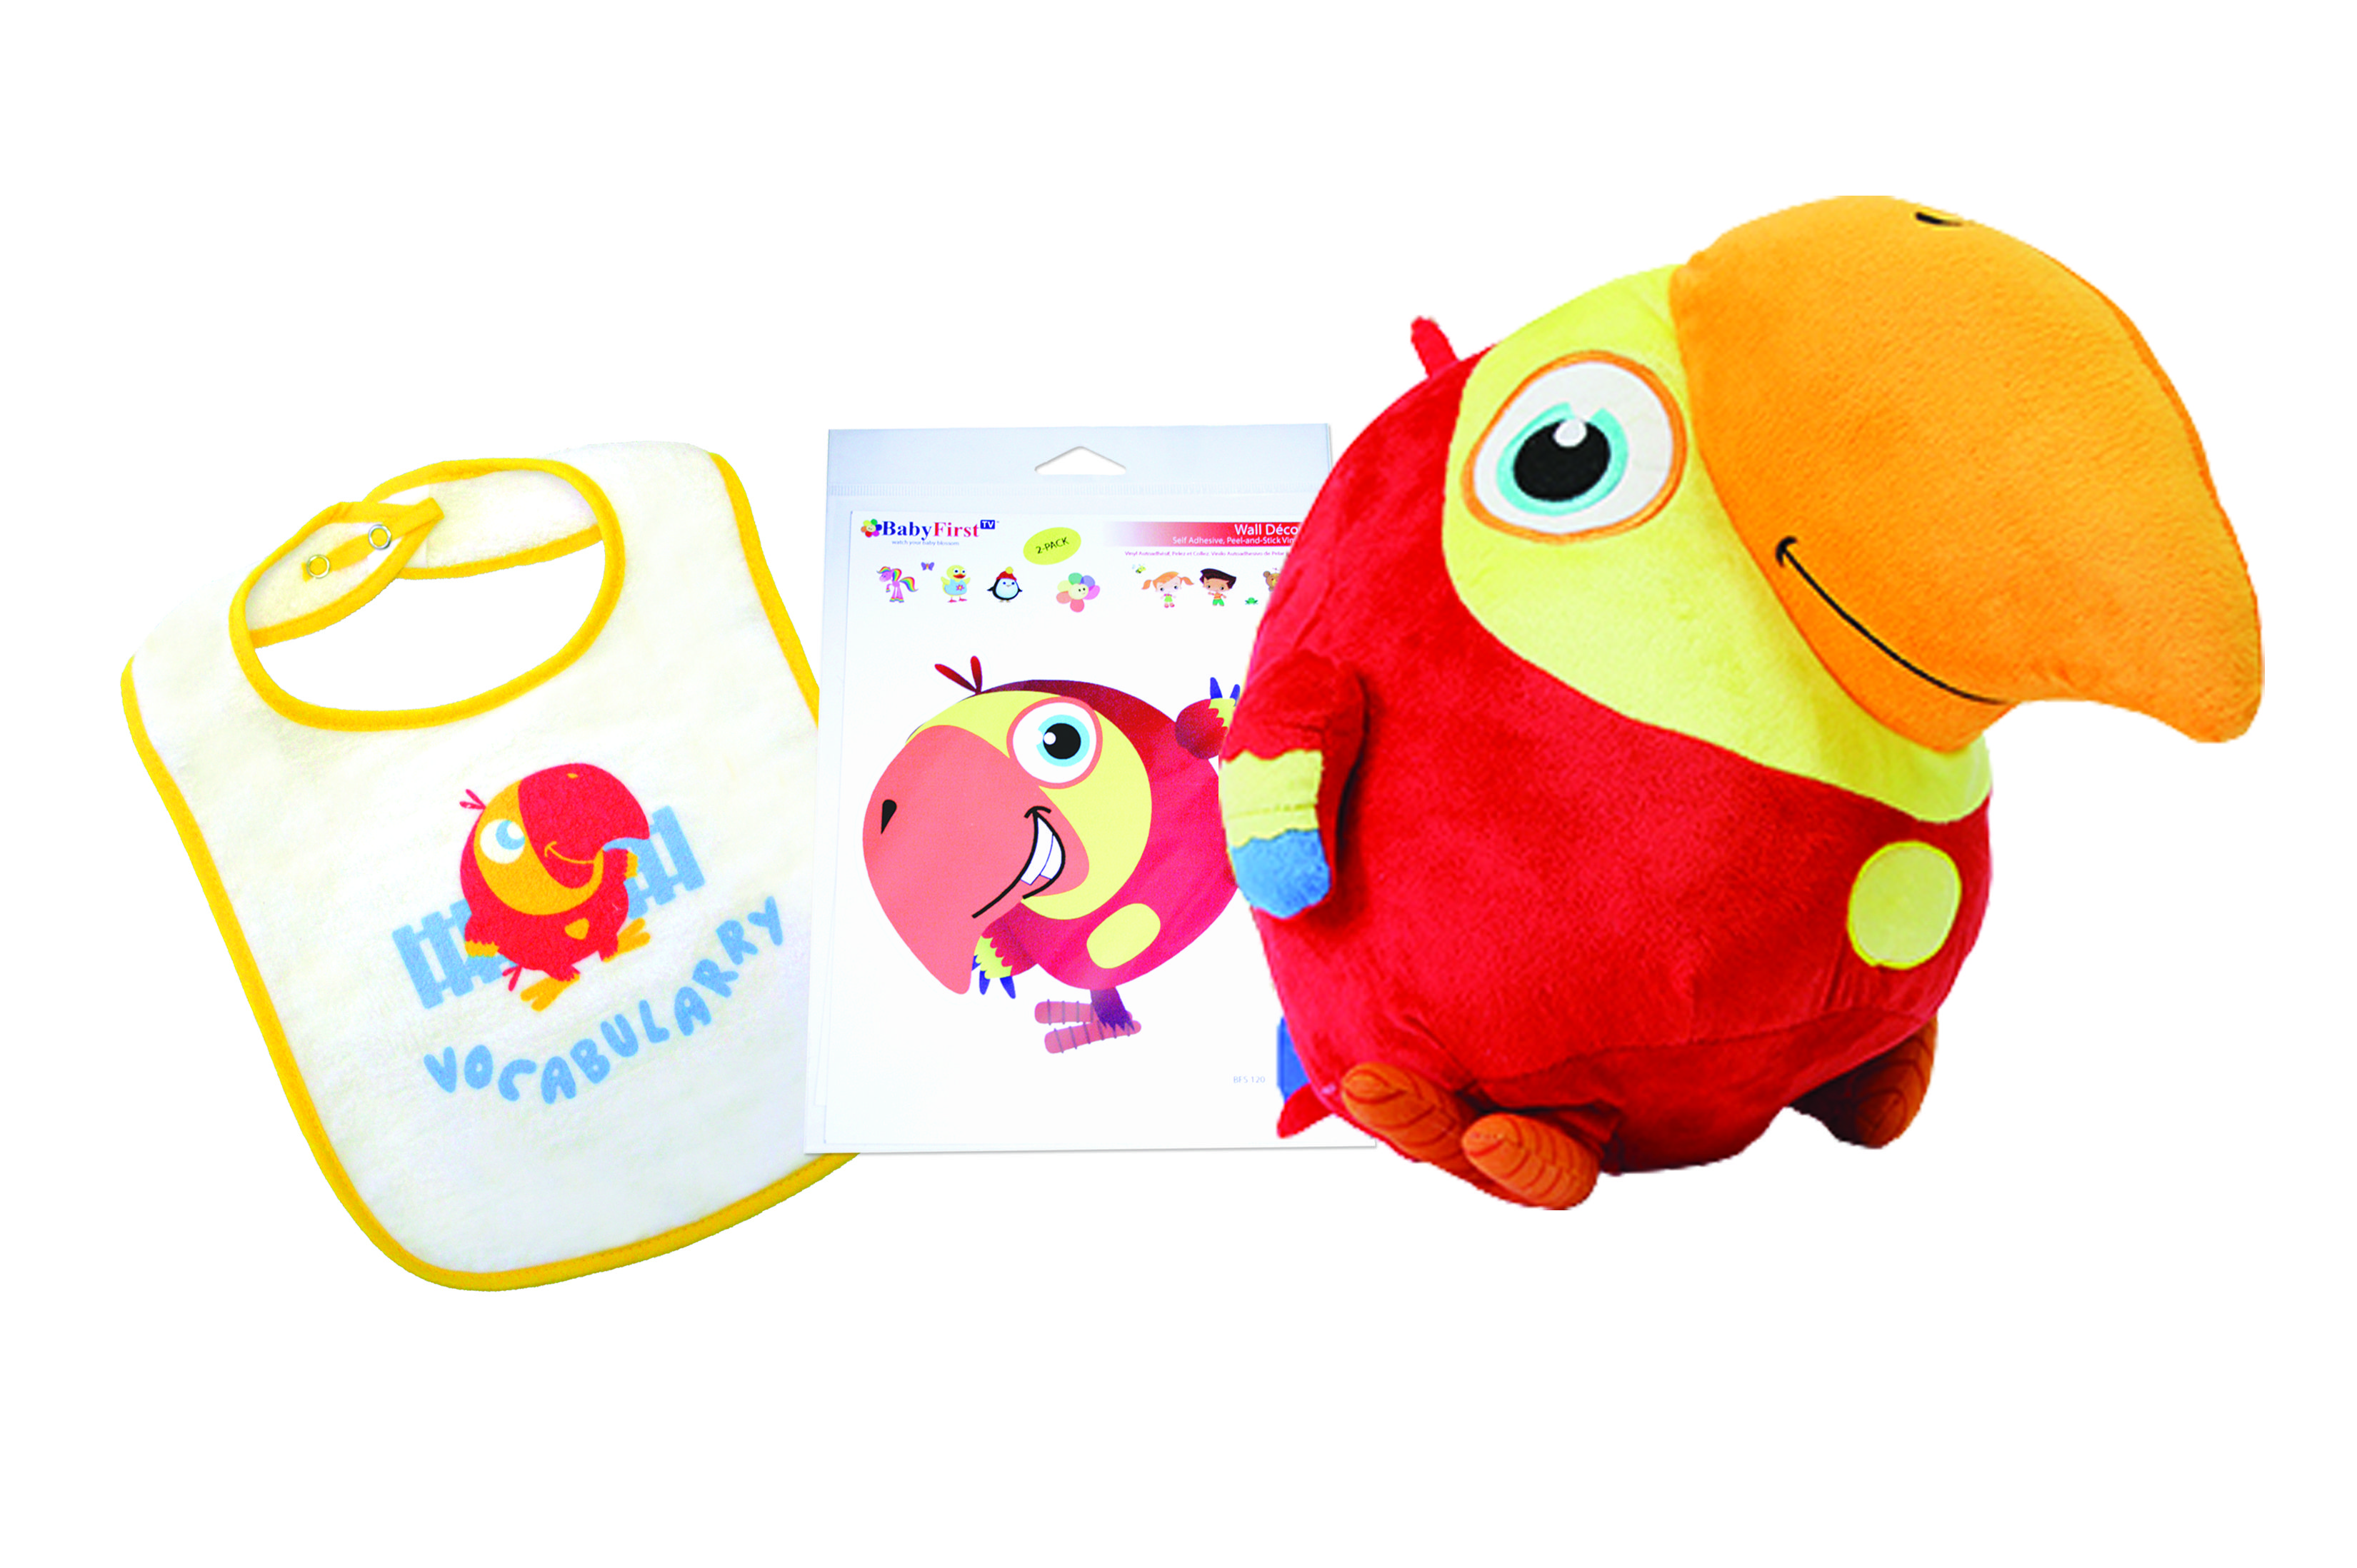 If you love VocabuLarry, you'll love the VocabuLarry Collection!! Get the plush toy, Larry Decal, and Bib... all together for a discounted price!!  This set makes a great birthday gift for any little boy or girl.